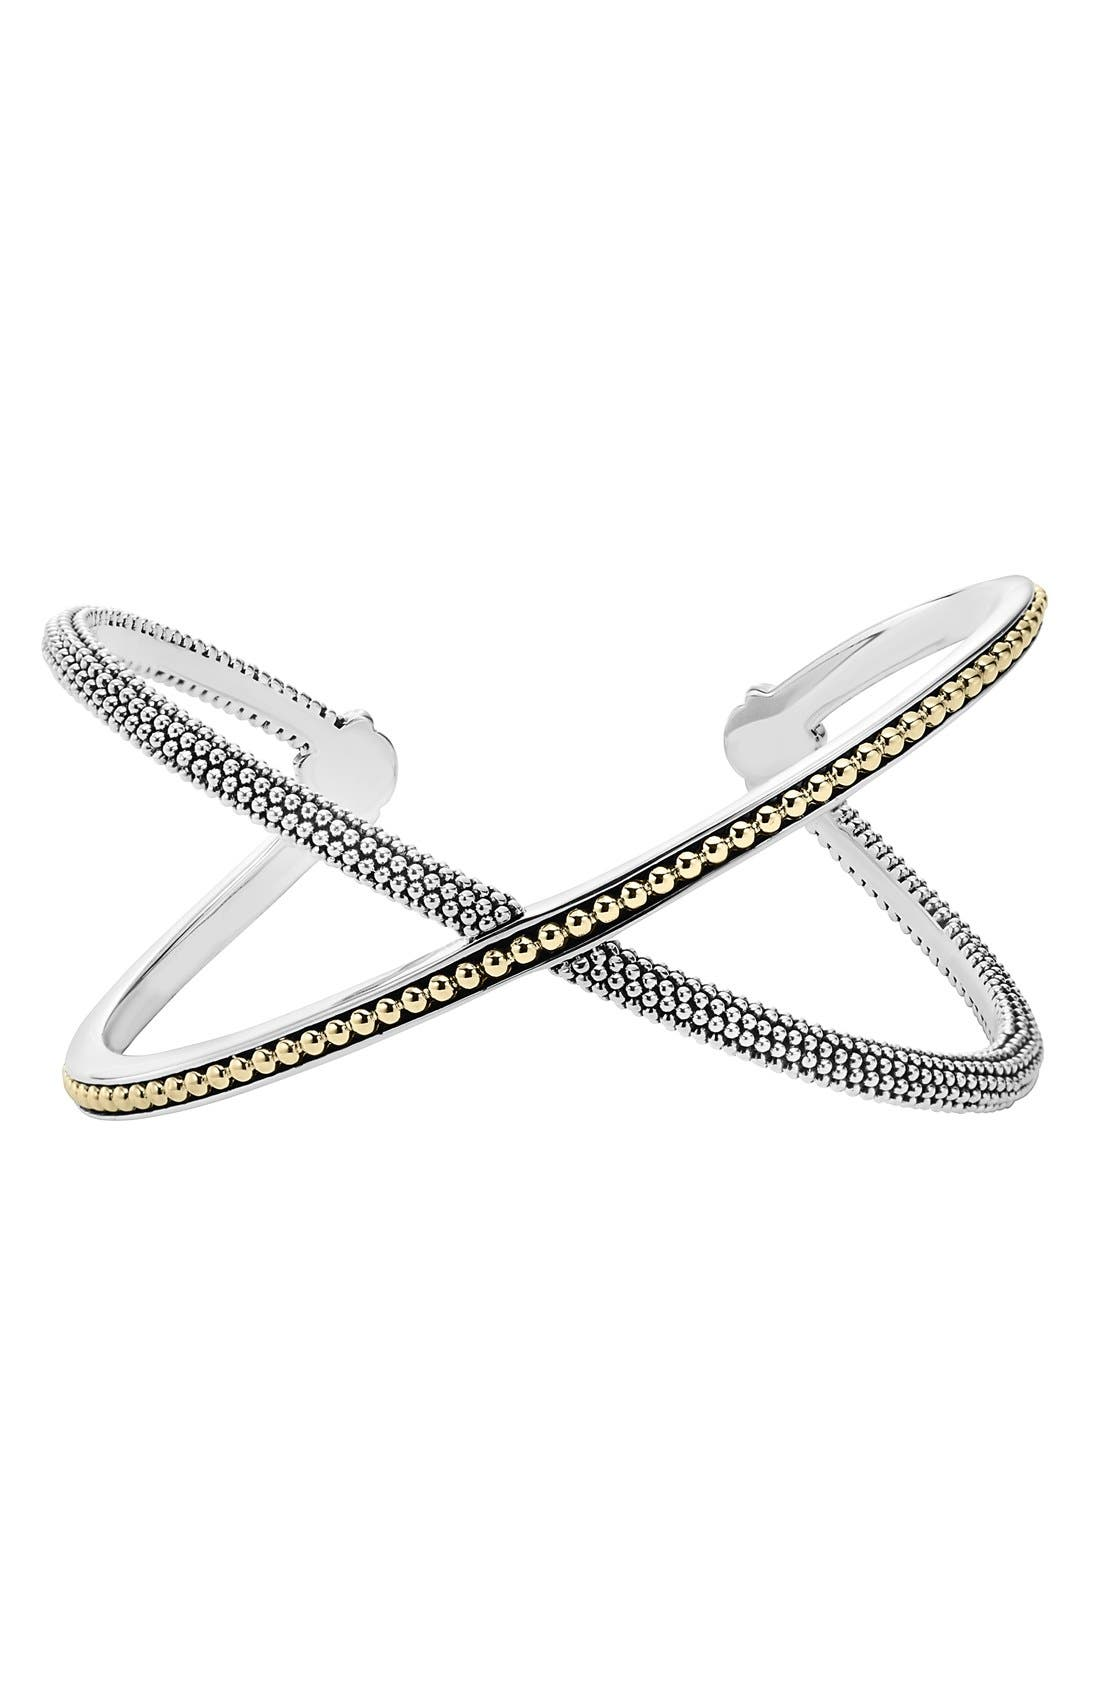 Infinity Cuff Bracelet,                         Main,                         color, 040